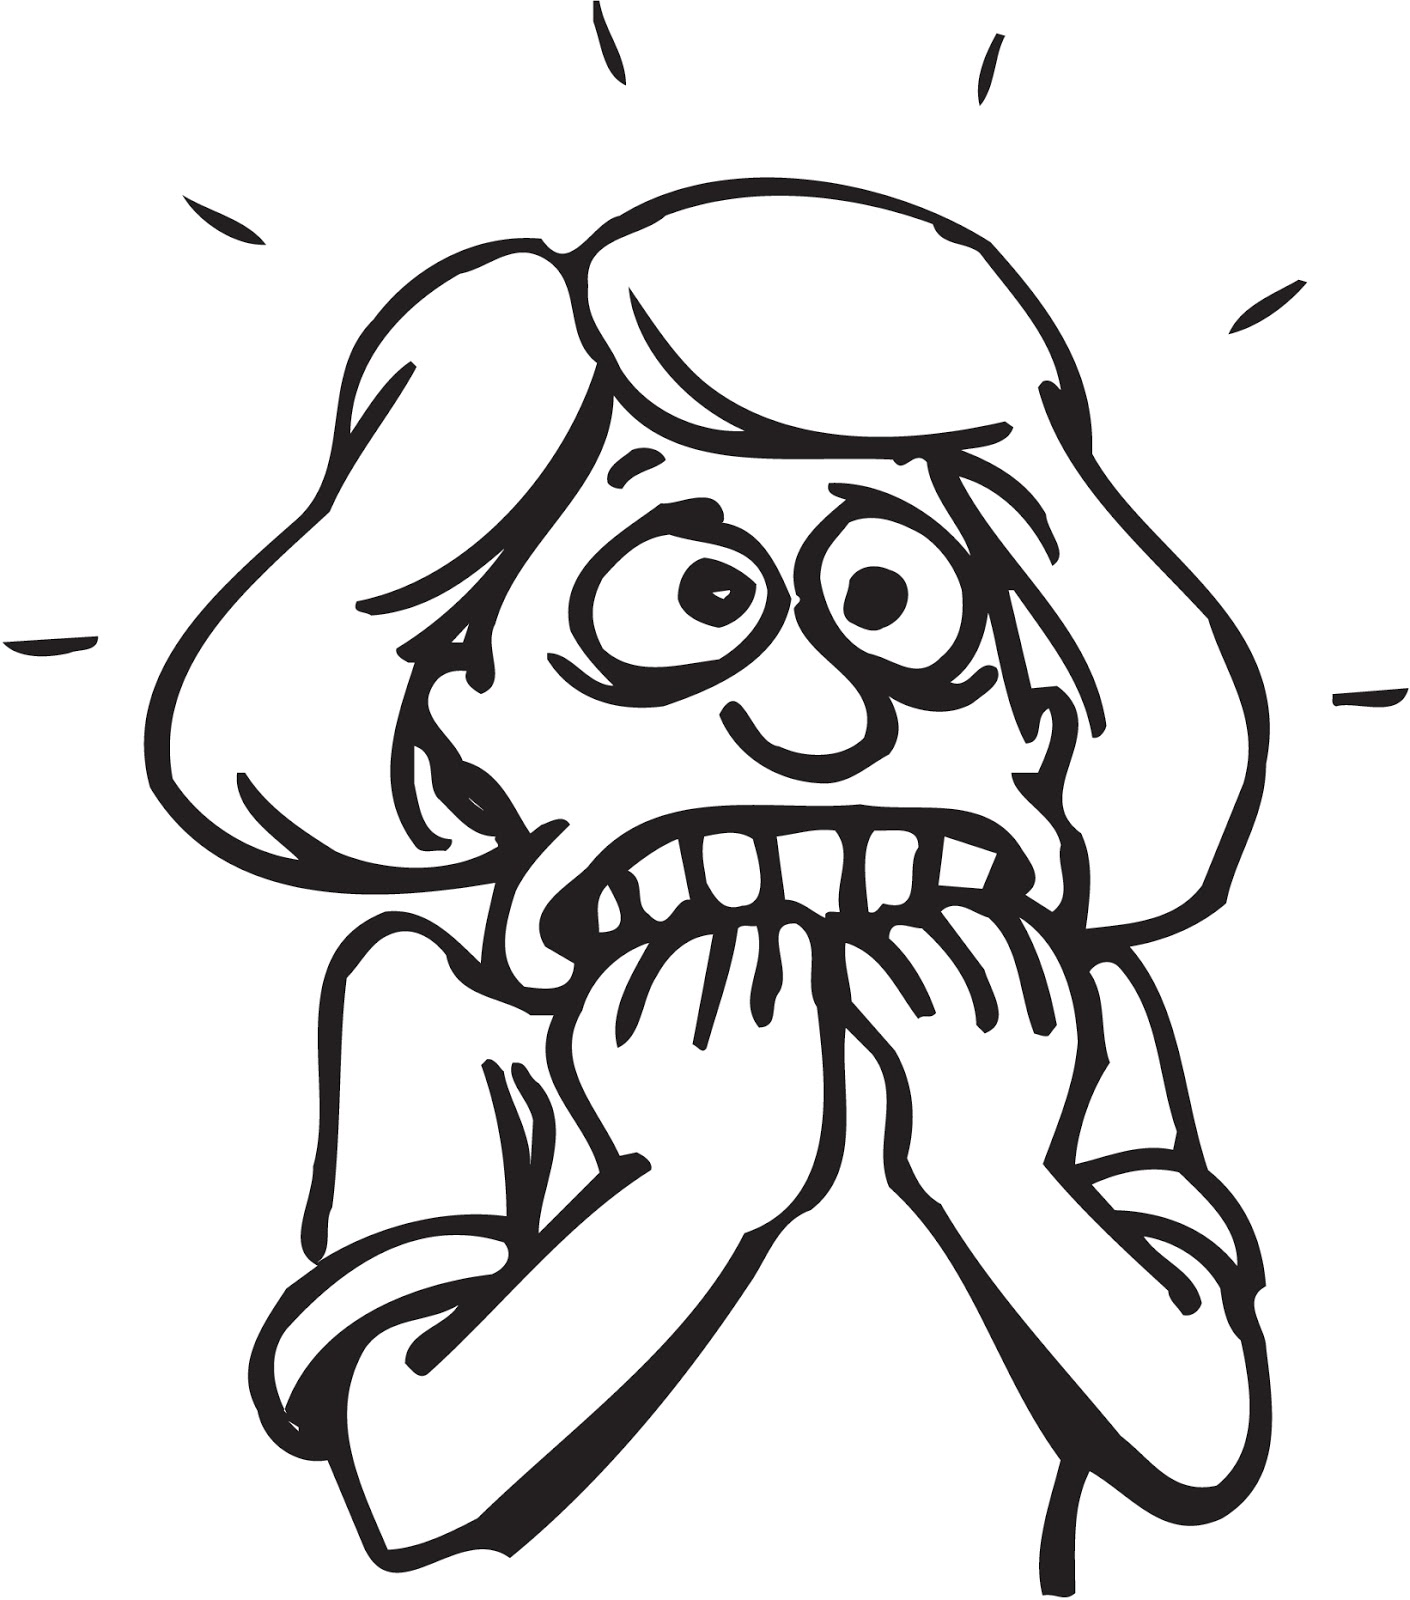 Frightened woman clipart.